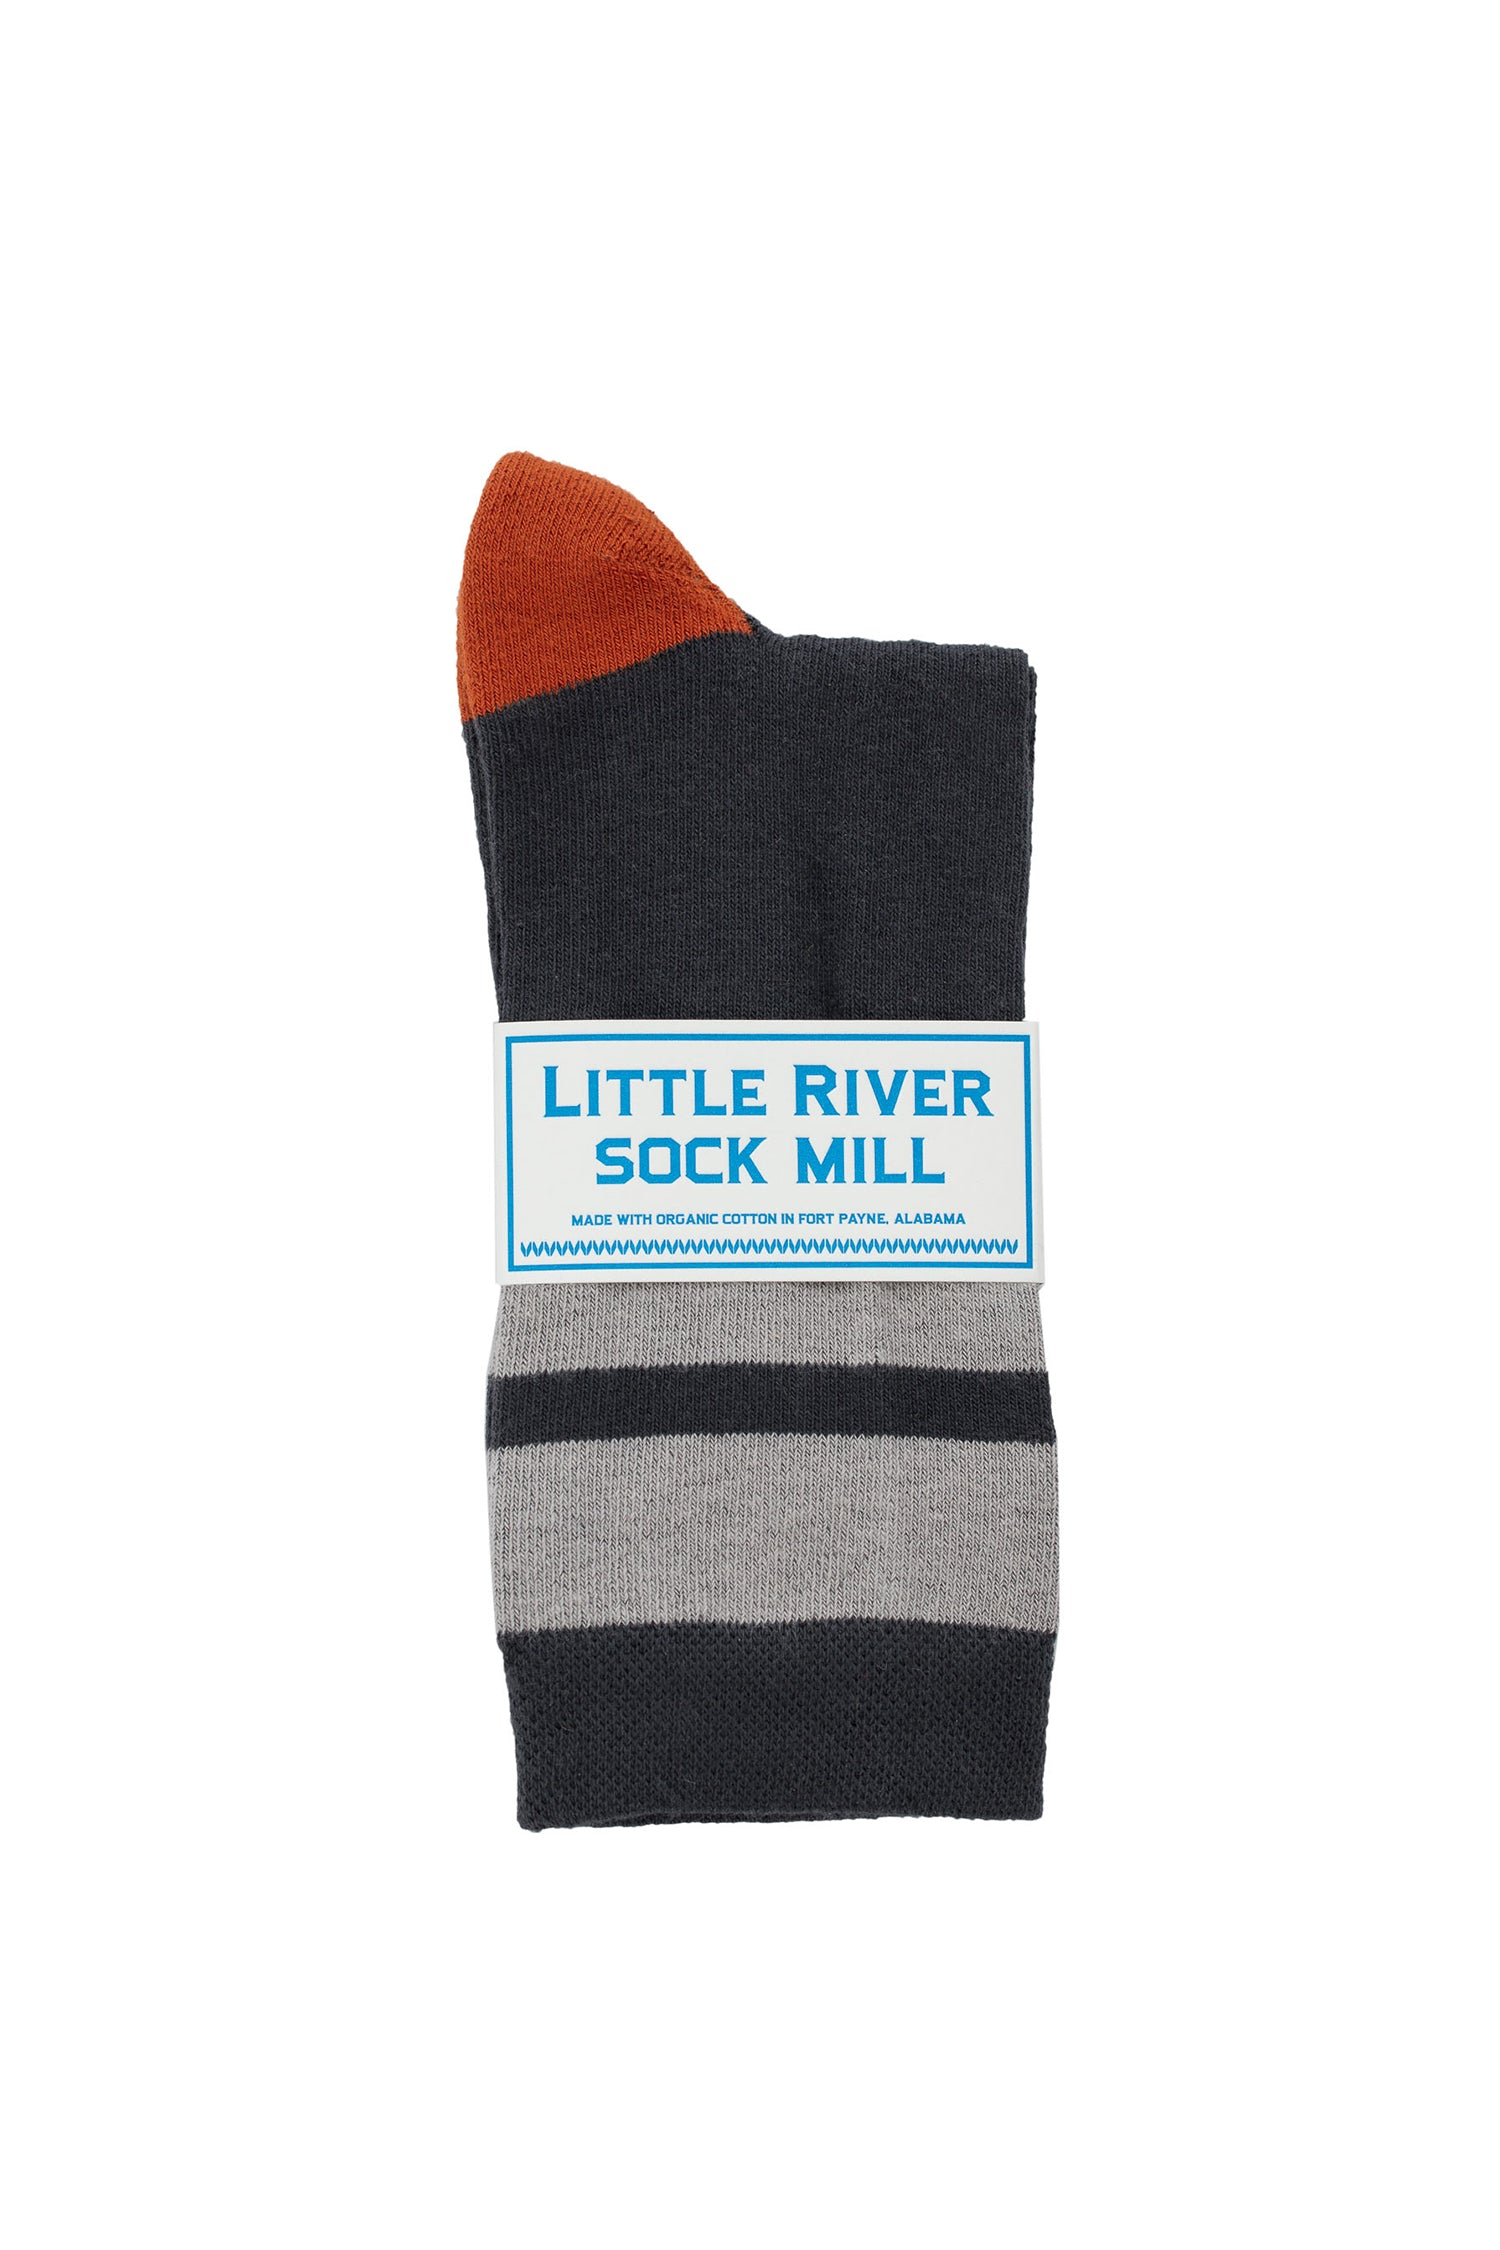 CUSHIONED STRIPED CREW SOCK BY LITTLE RIVER SOCK MILL